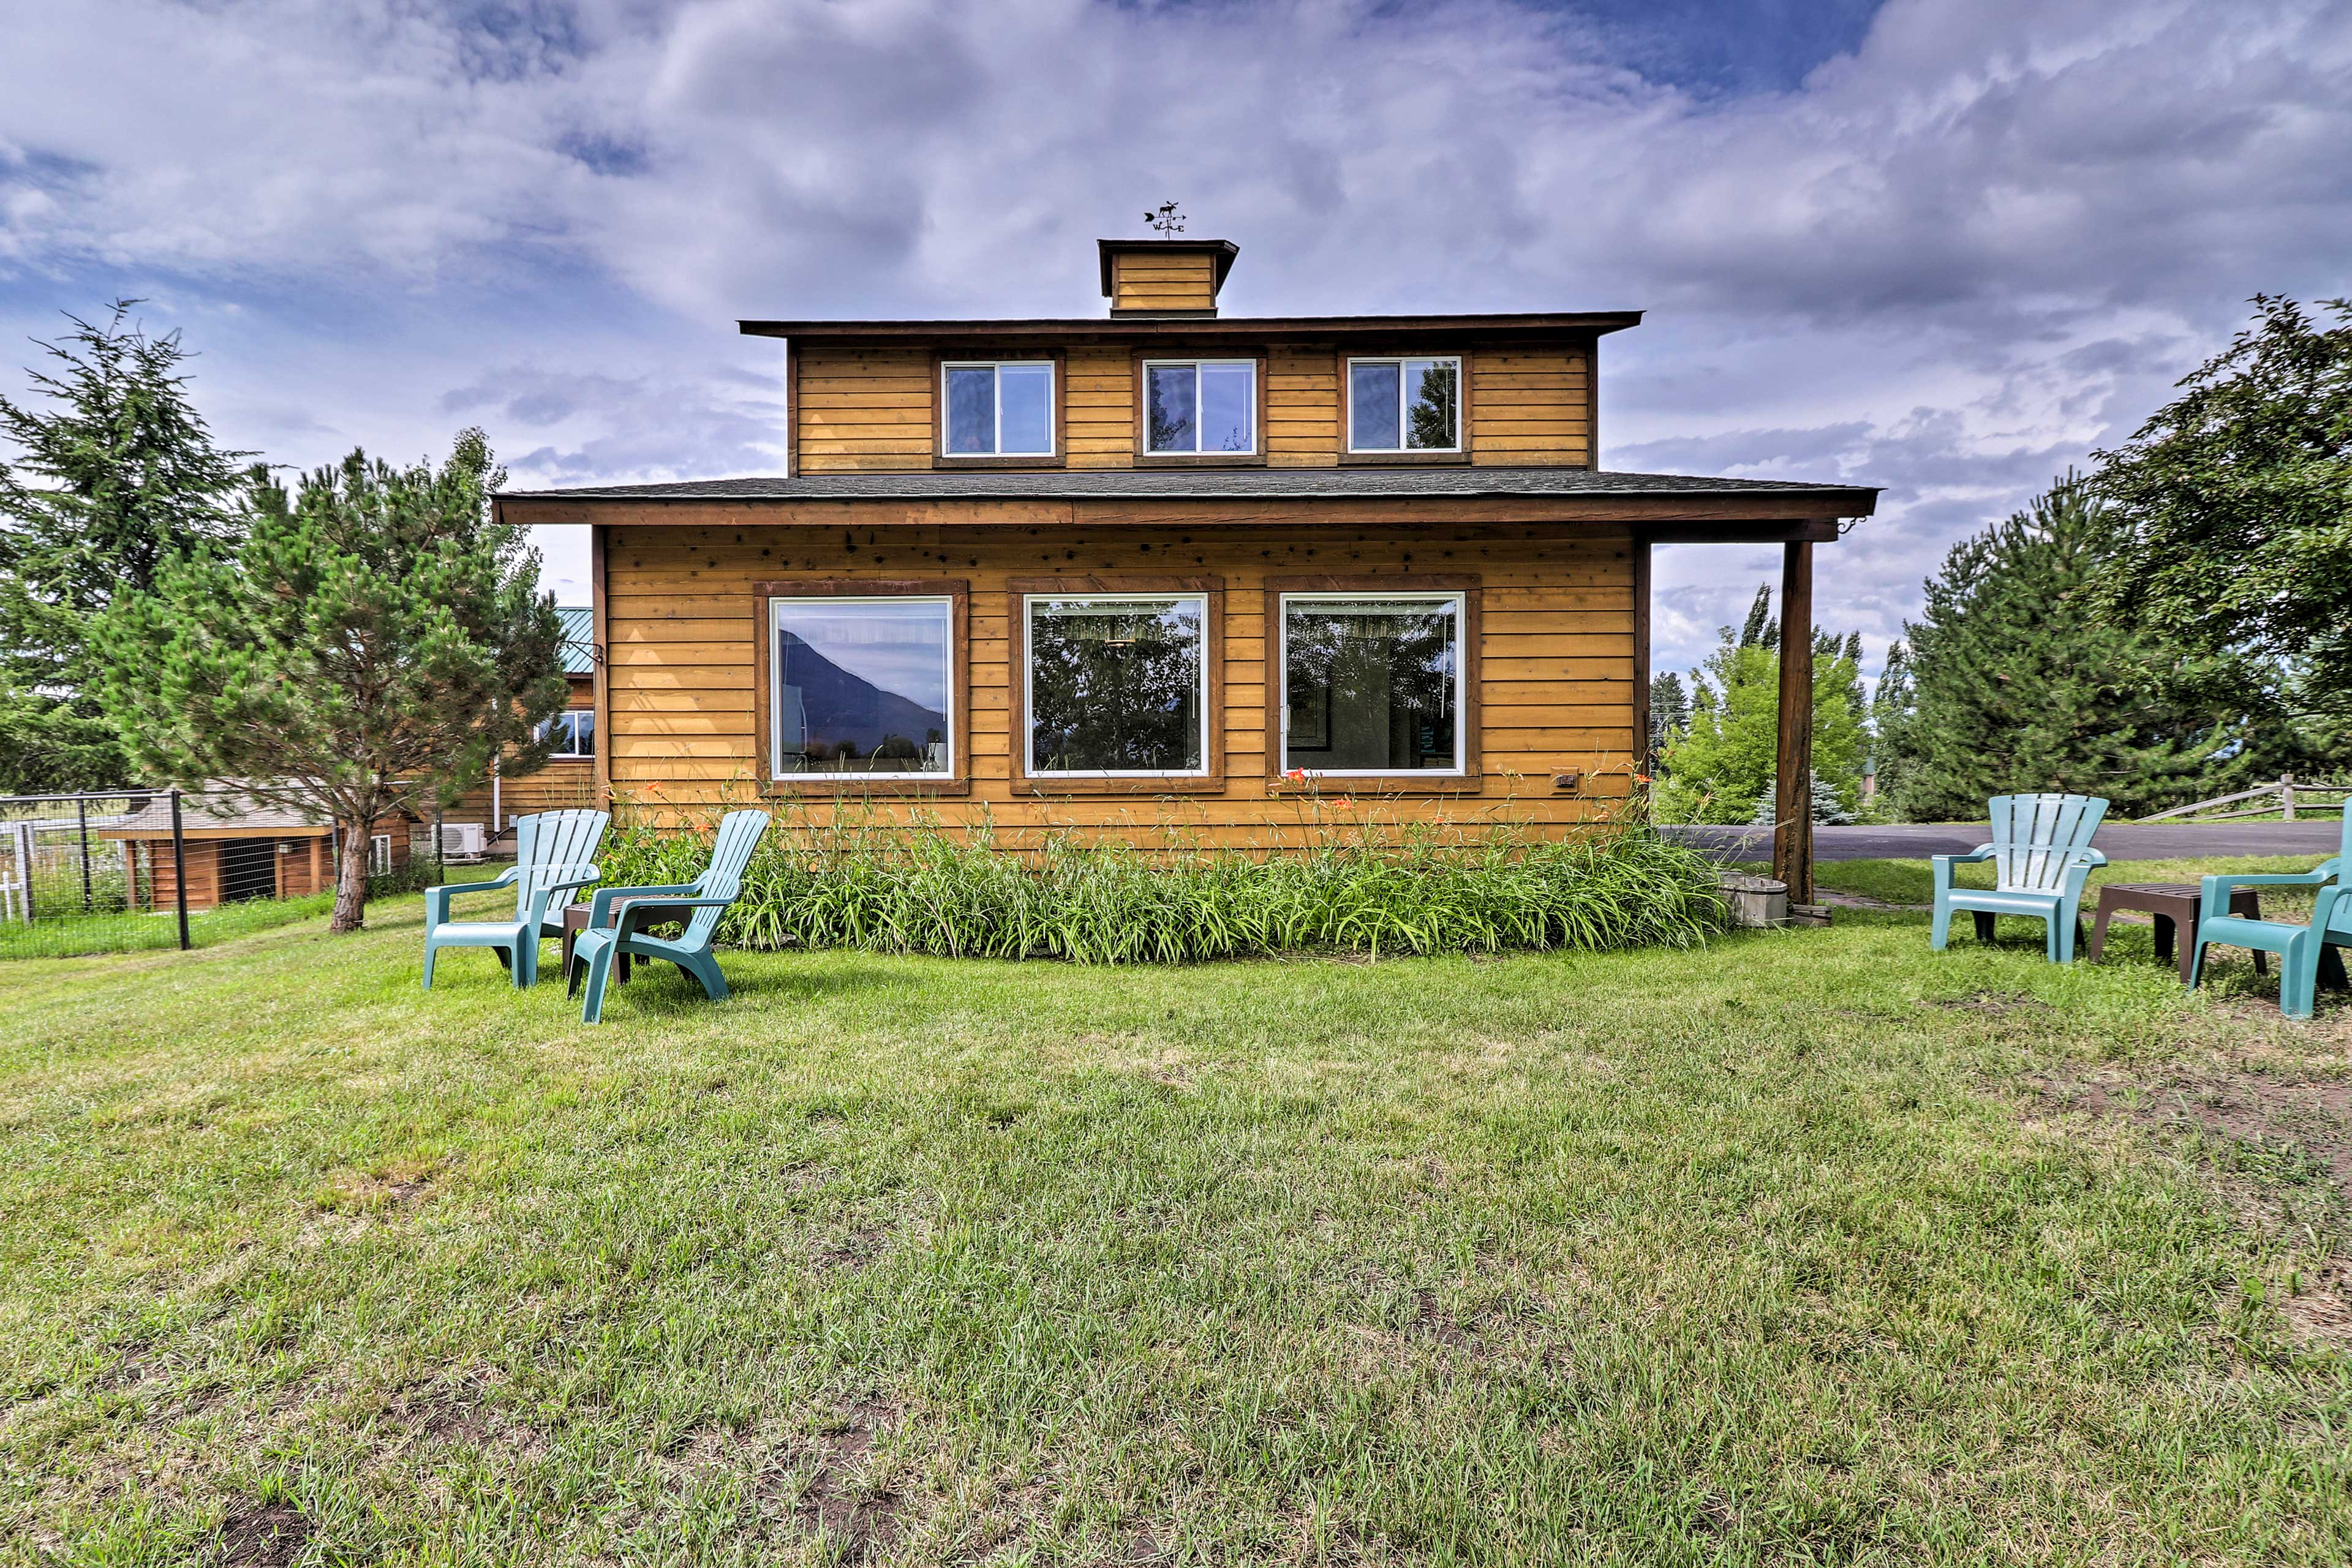 The 2-story studio cabin features 1 bedroom and 1 bathroom for 6 guests.